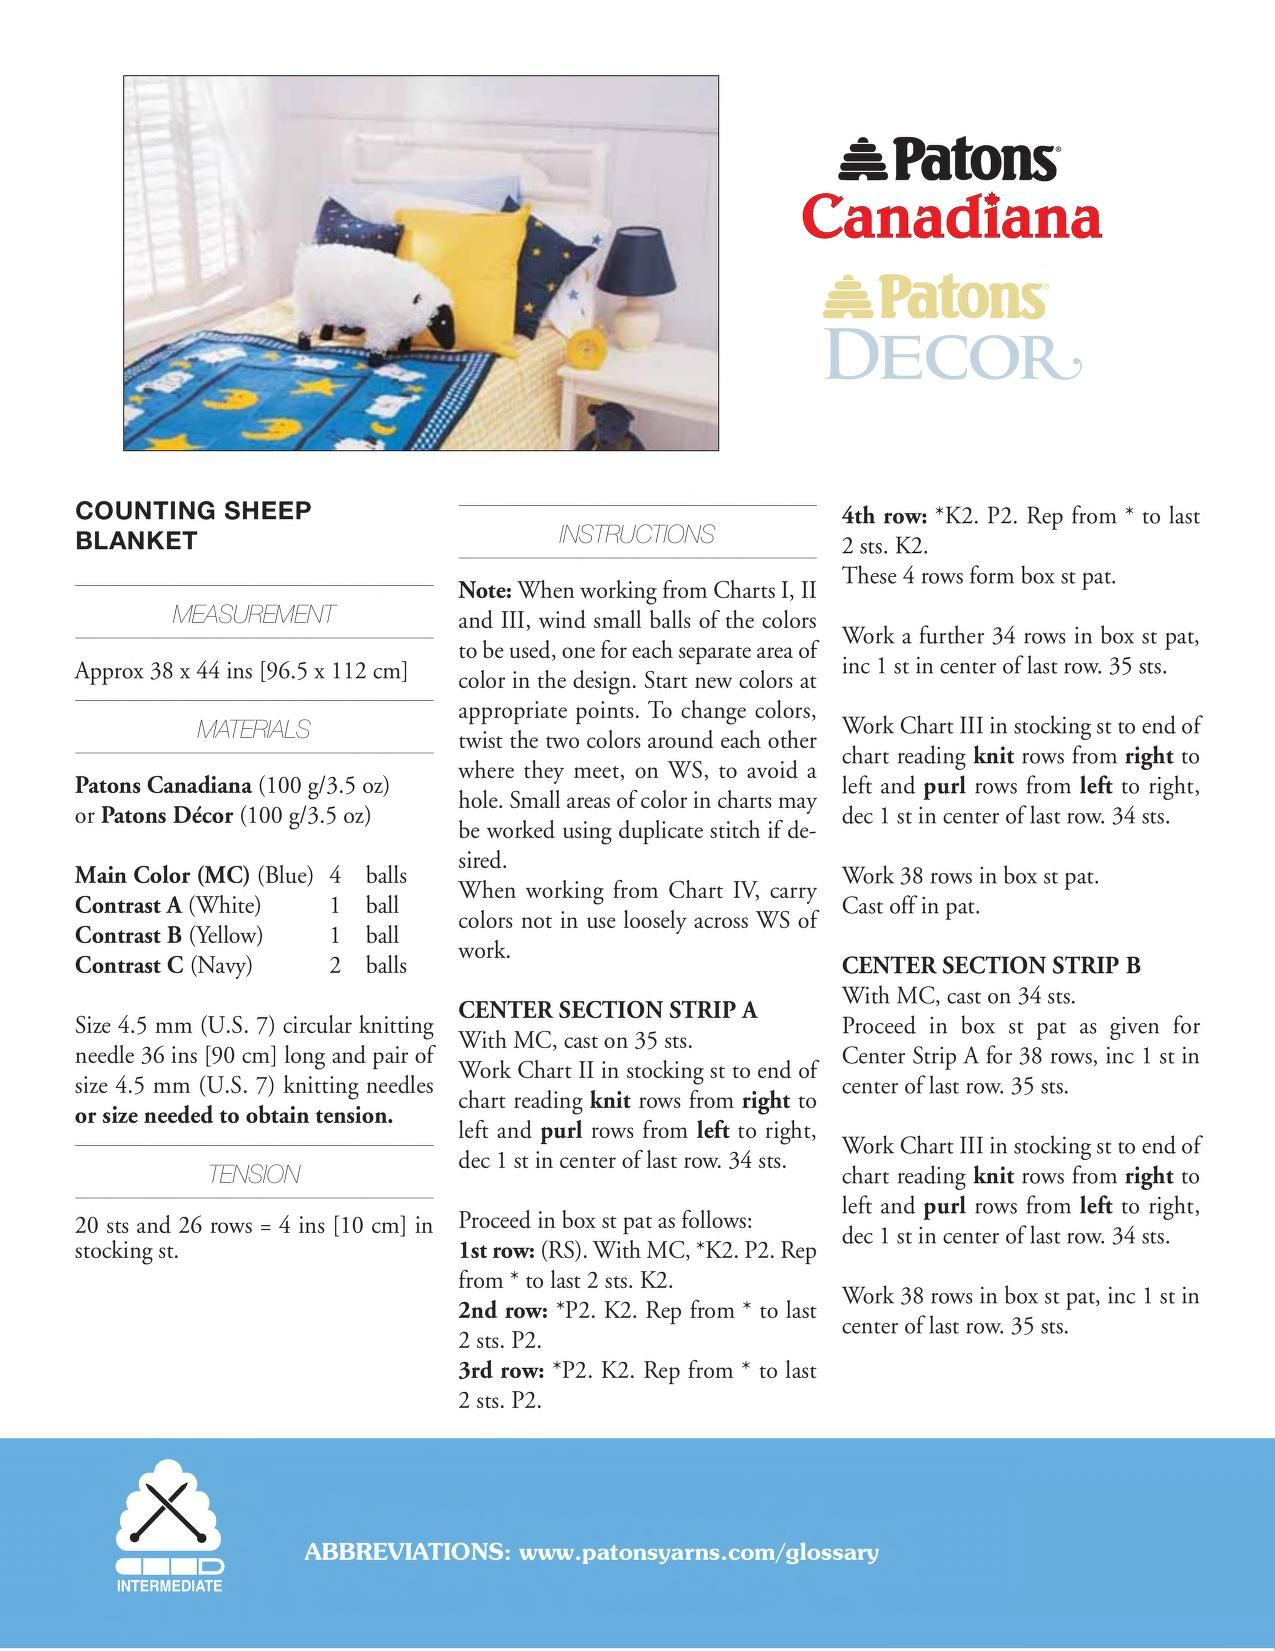 Patons Canadiana Counting Sheep Blanket Free Download